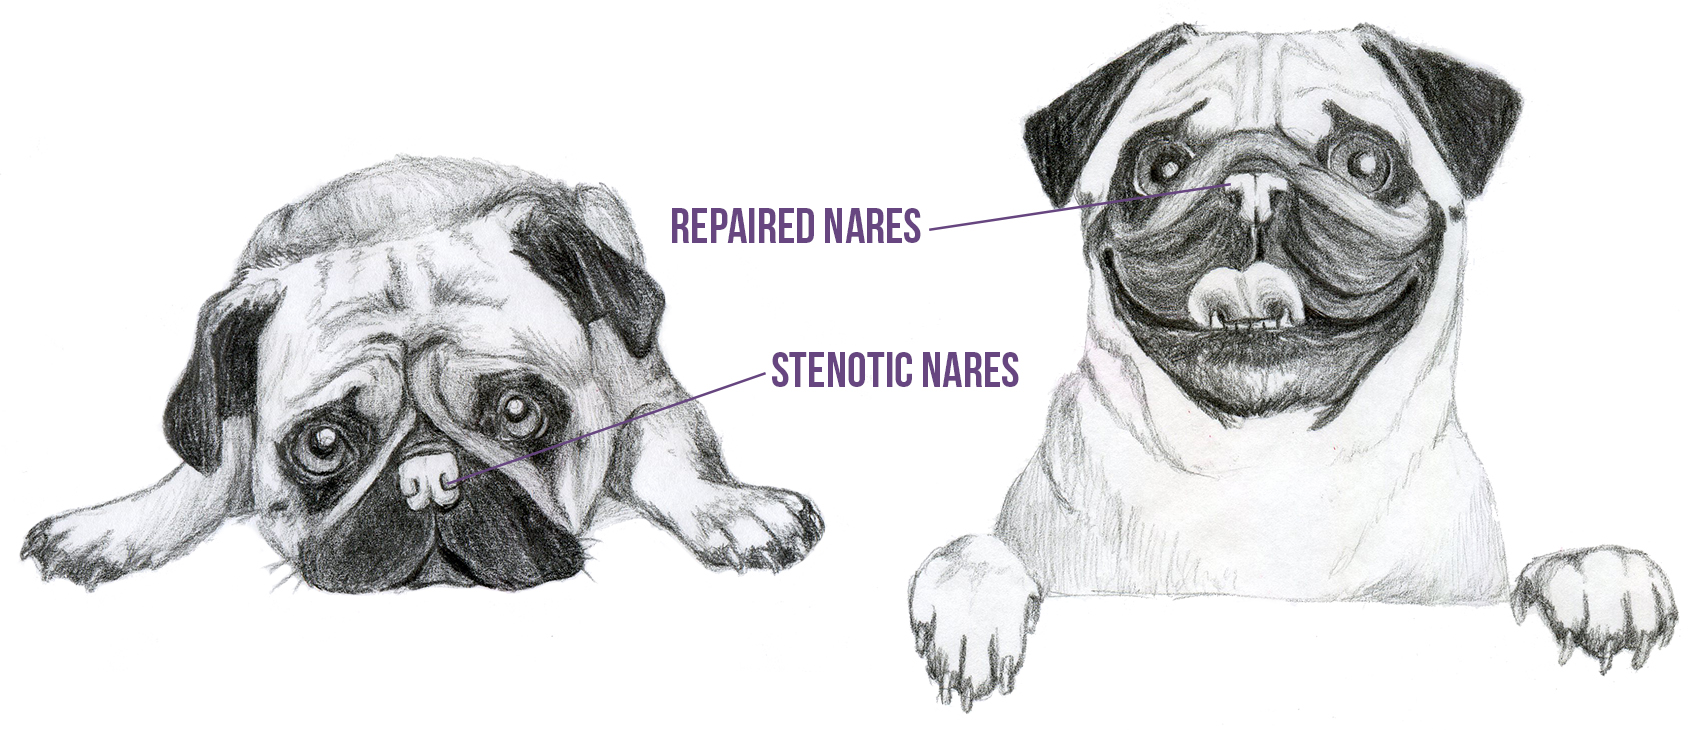 On the left, a drawing of a sad pug with tightly closed nares. On the right, a drawing of a happy pug with post operative opened nares.